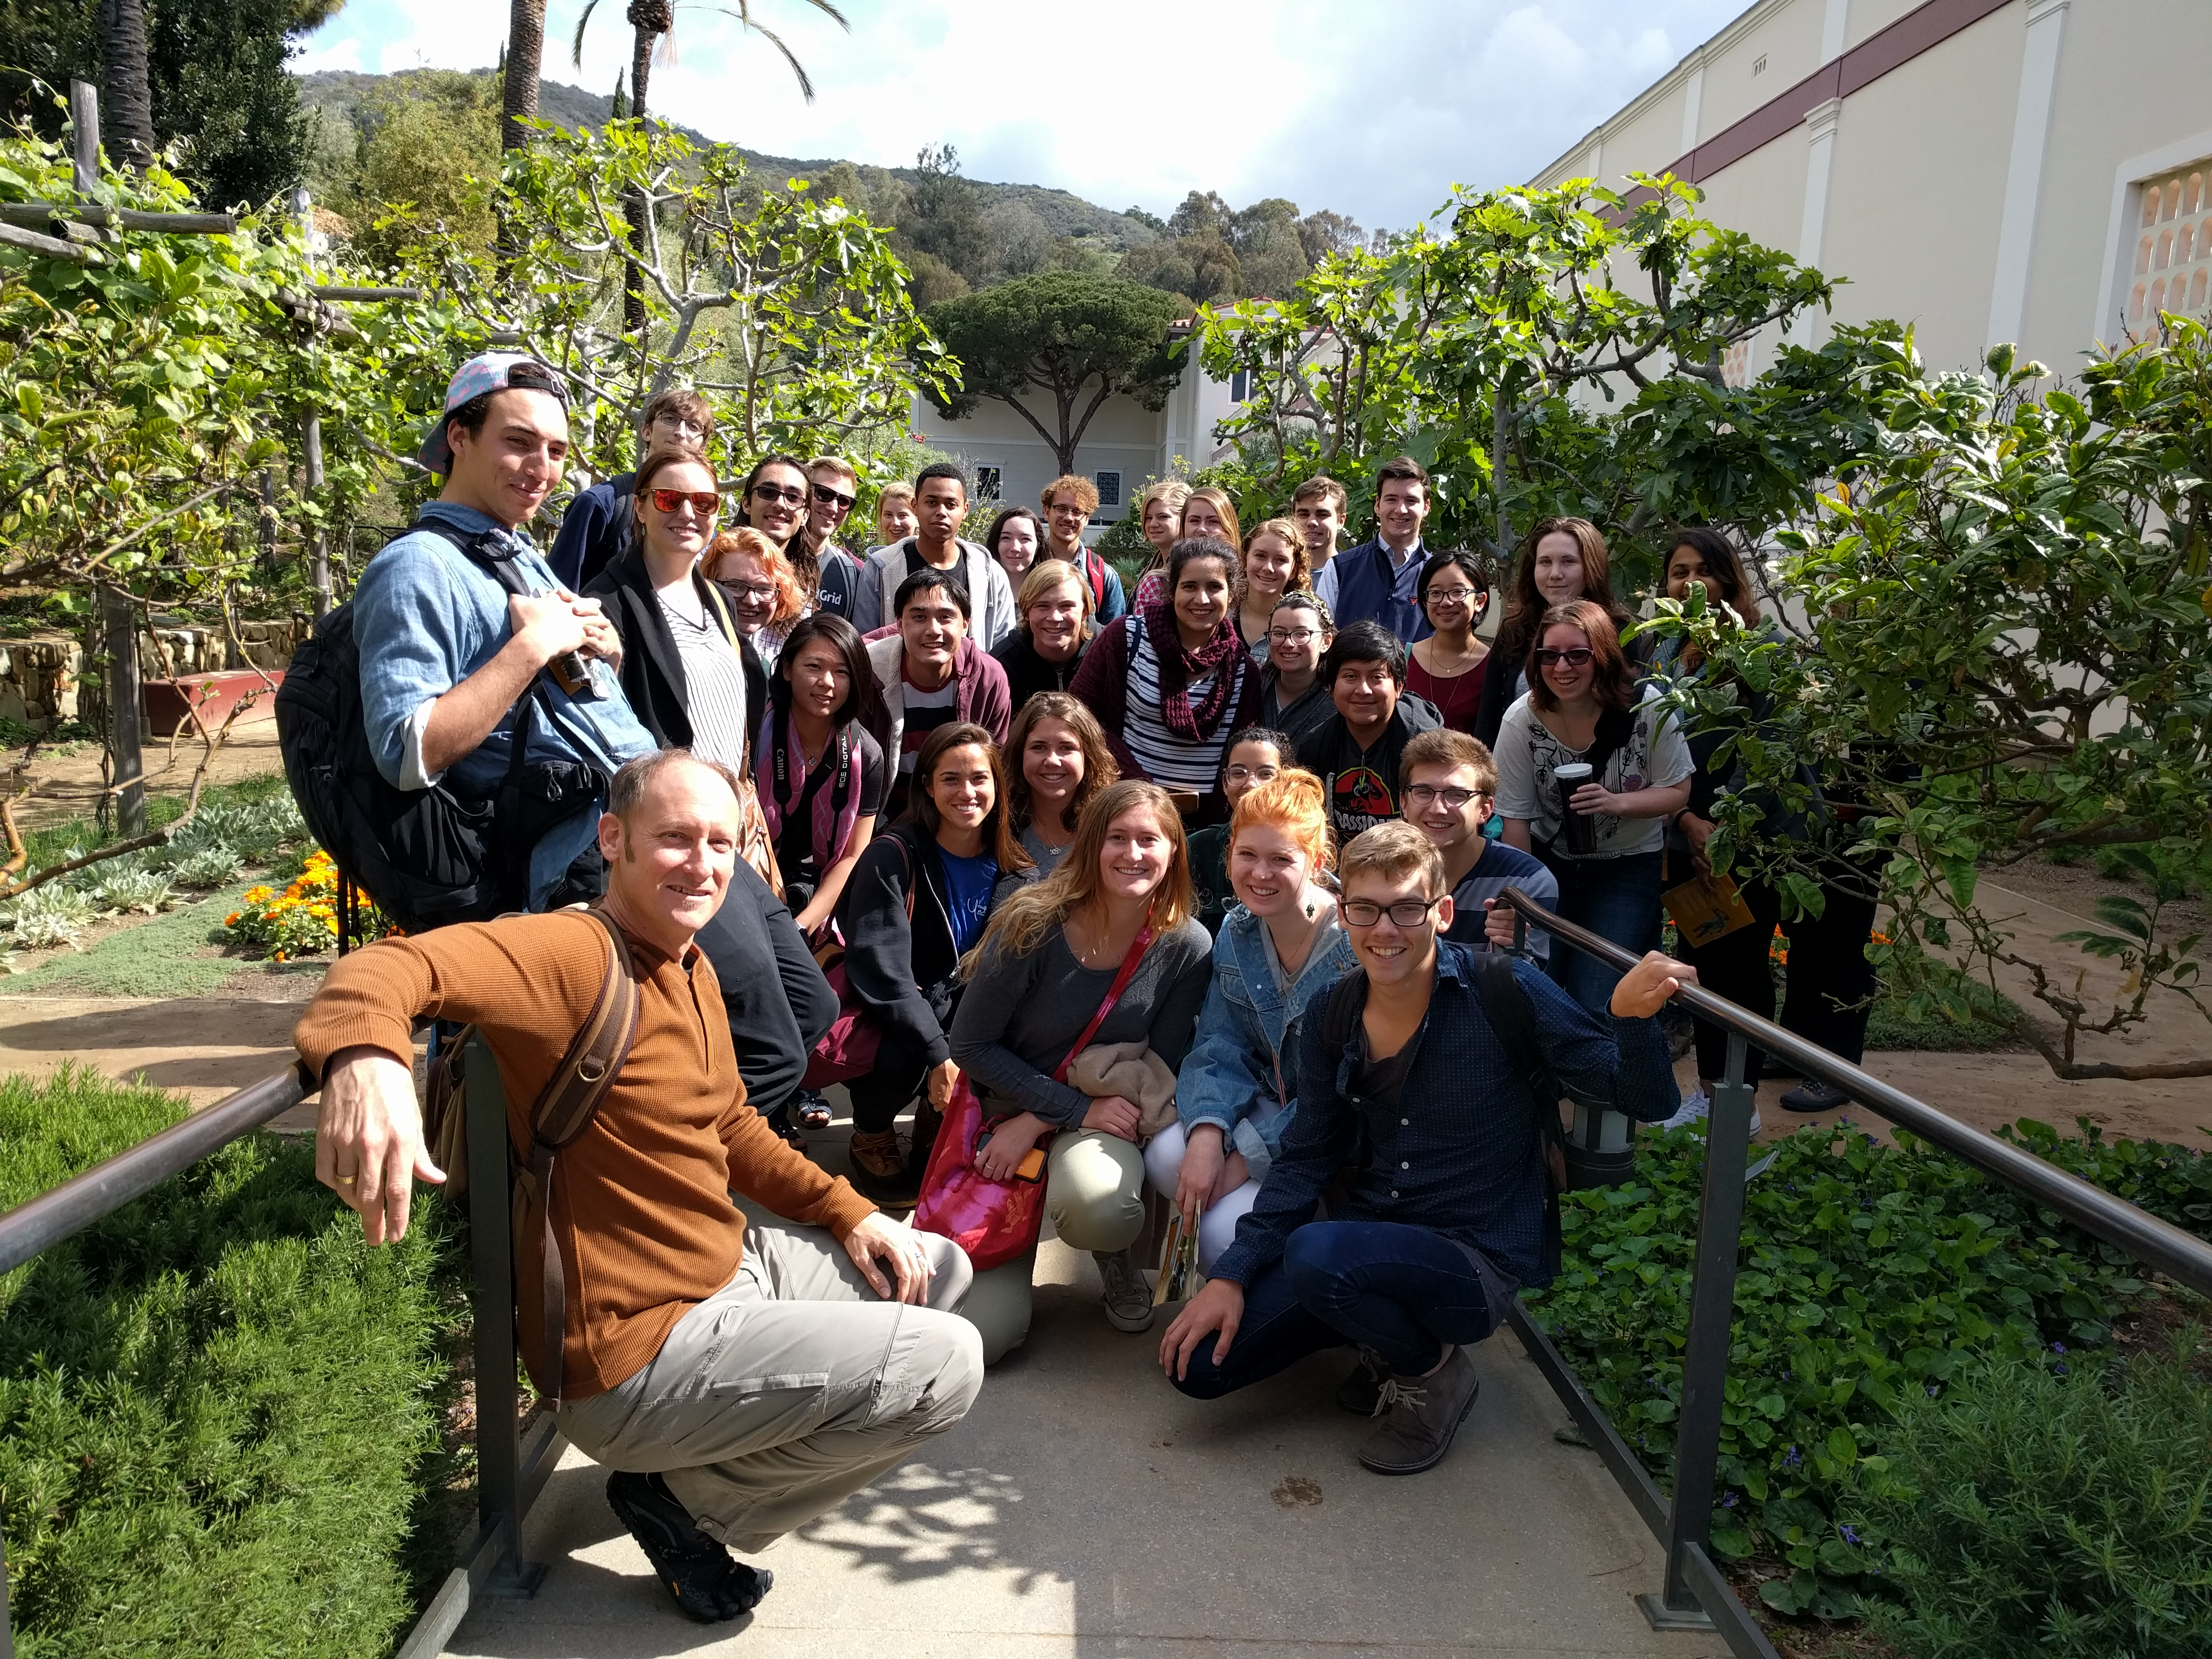 Professor Bjornlie and students at the Getty Villa